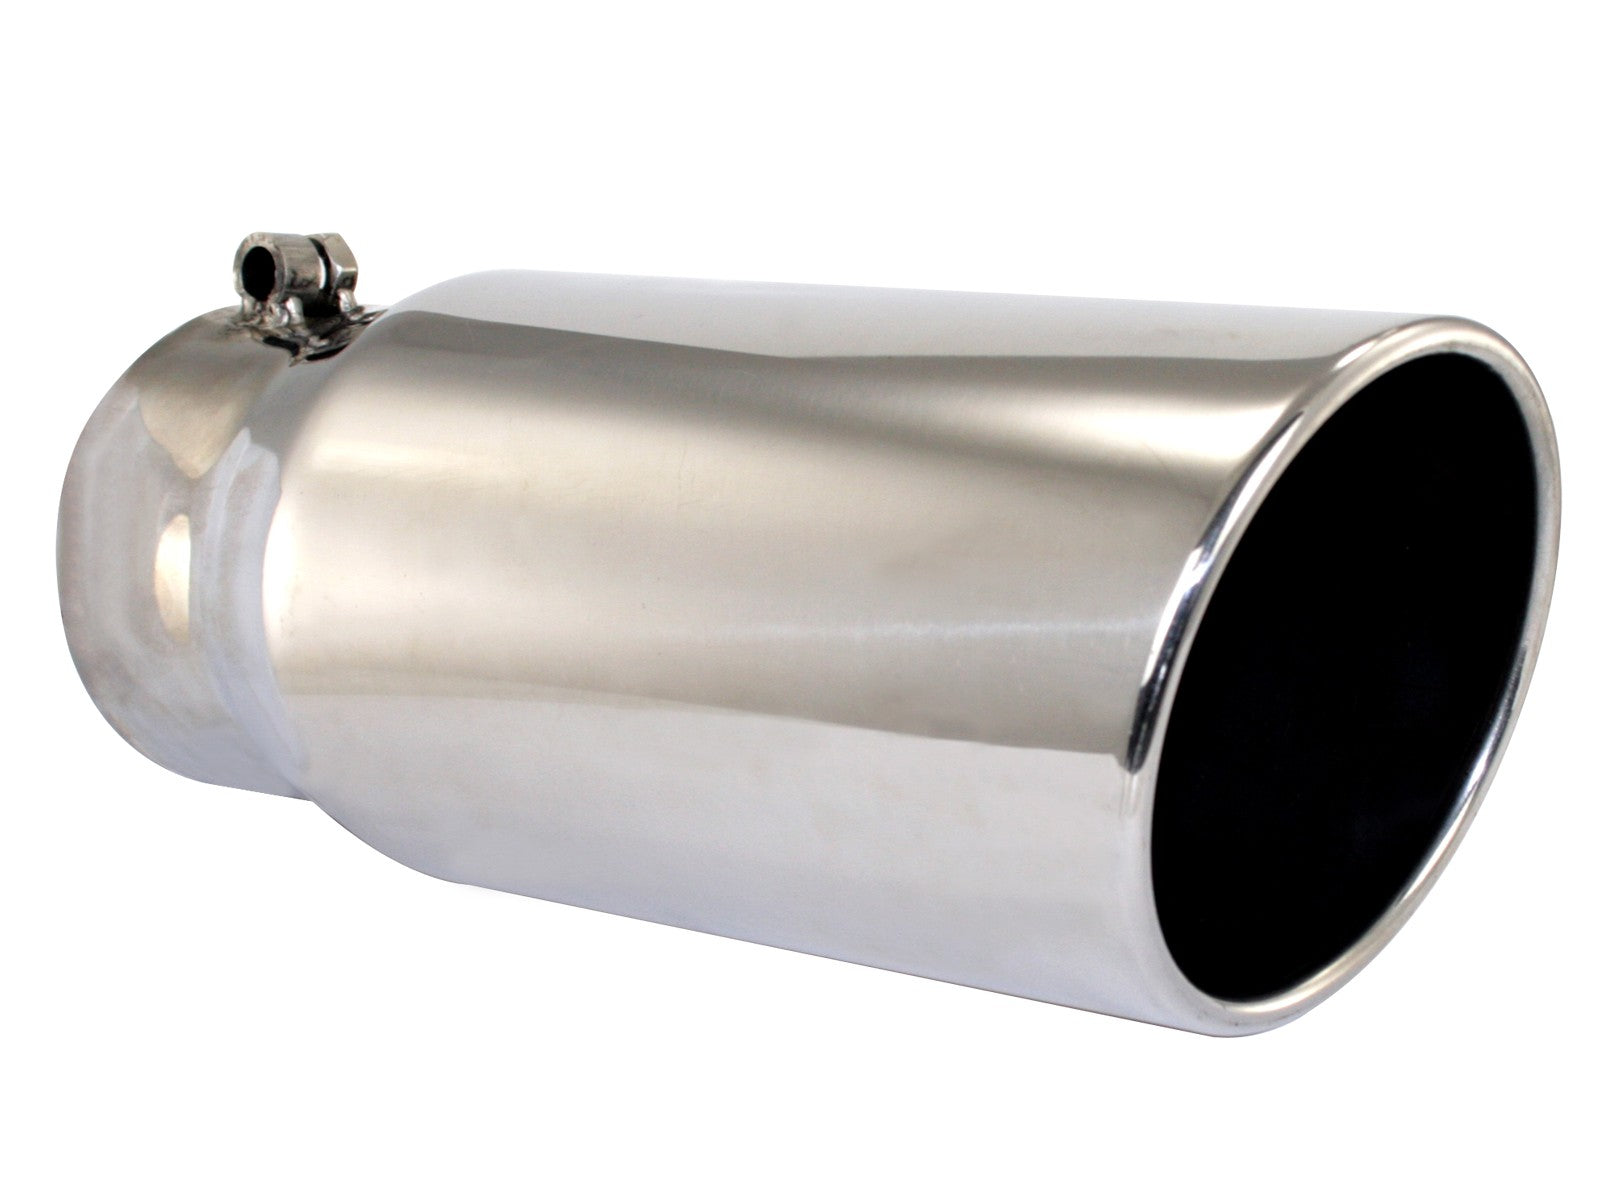 "AFE Power MACH Force-Xp 4"" Stainless Steel Exhaust Tip - Northwest Diesel"